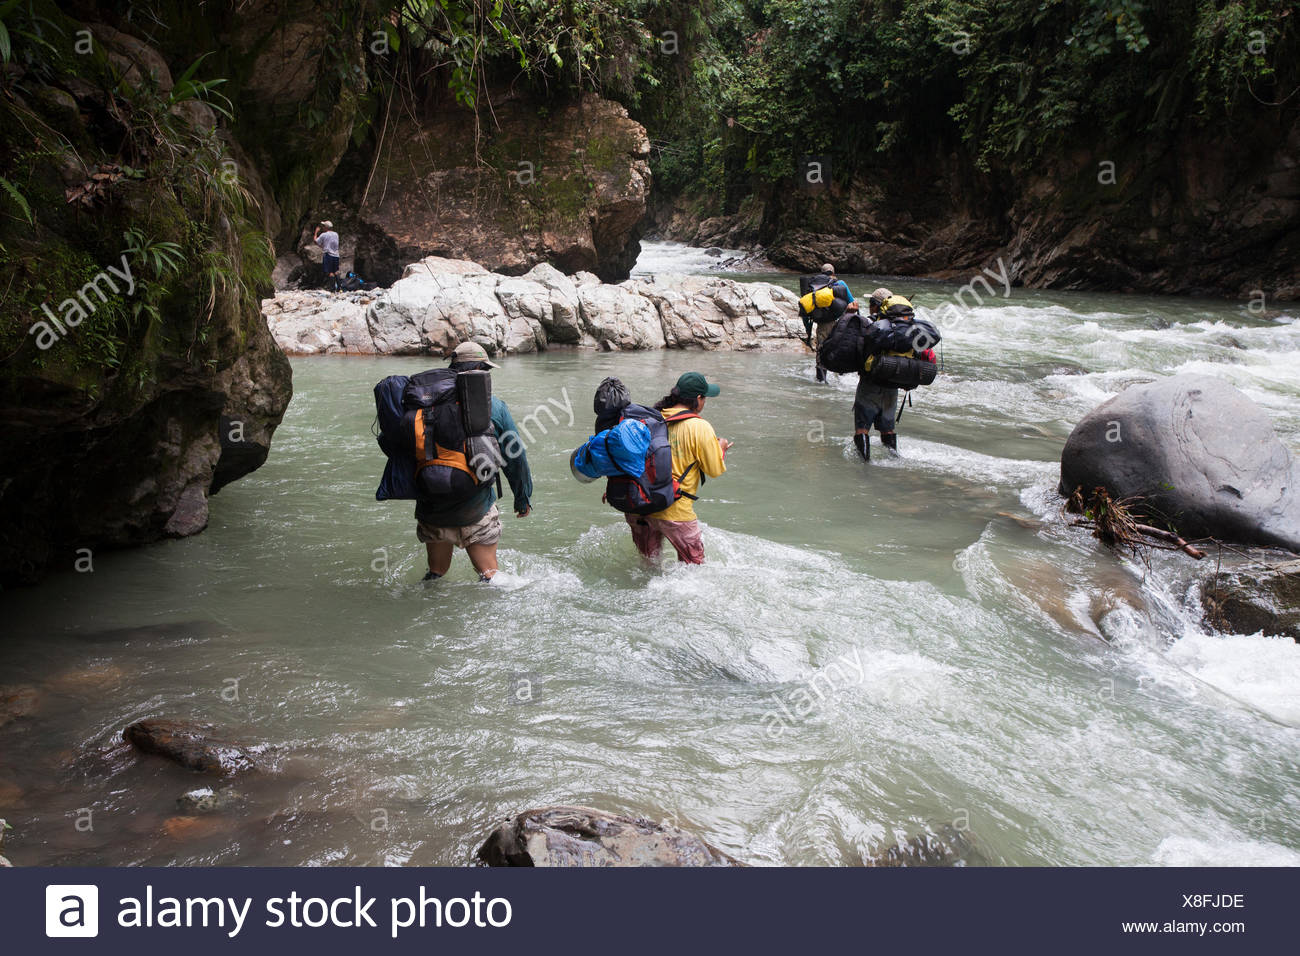 People cross a river on a trek into the reserve managed by the Queros Wachiperi indigenous community. - Stock Image